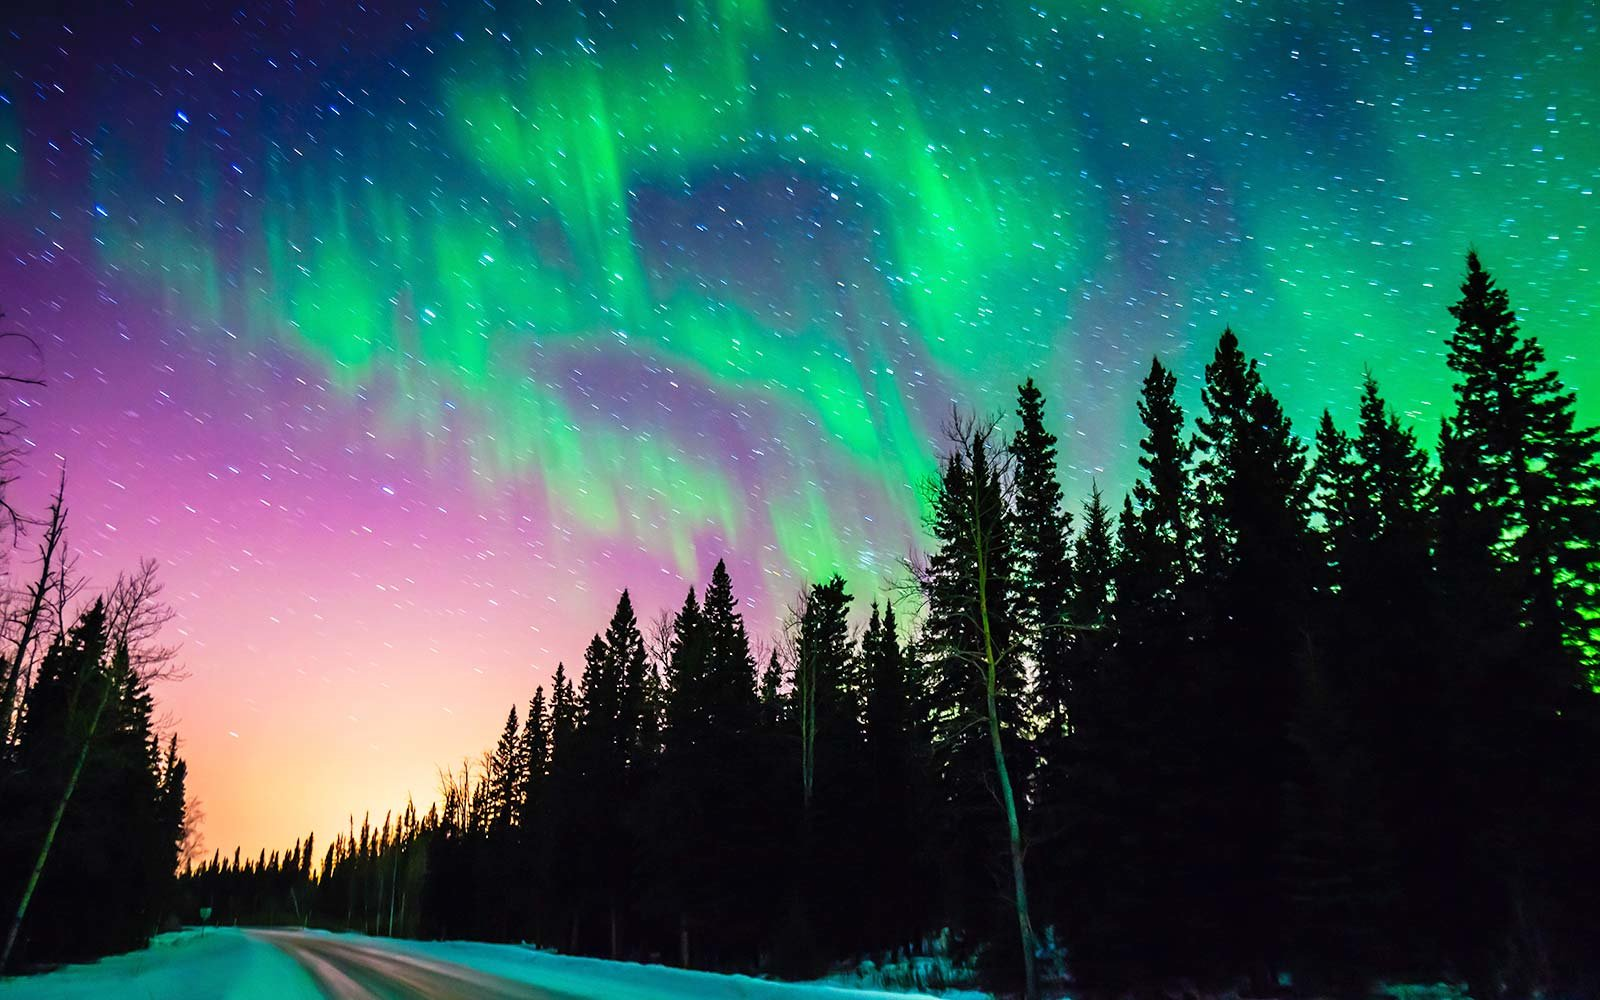 Marvelous Fairbanks Alaska USA Aurora Borealis Northern Lights Amazing Pictures